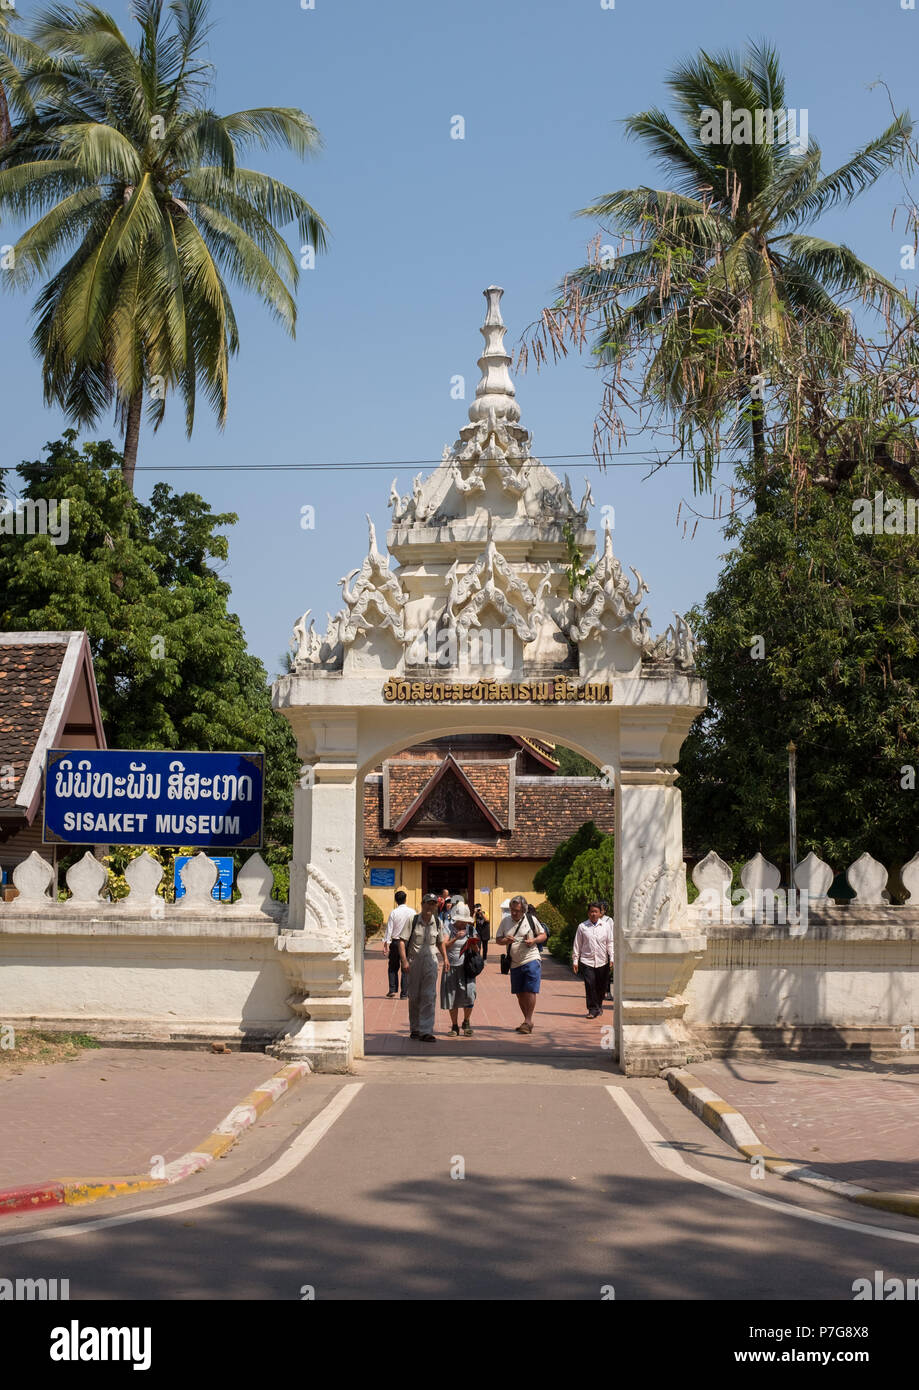 Tourists at the entrance of Sisaket Museum, Vientiane, Laos, Asia. - Stock Image